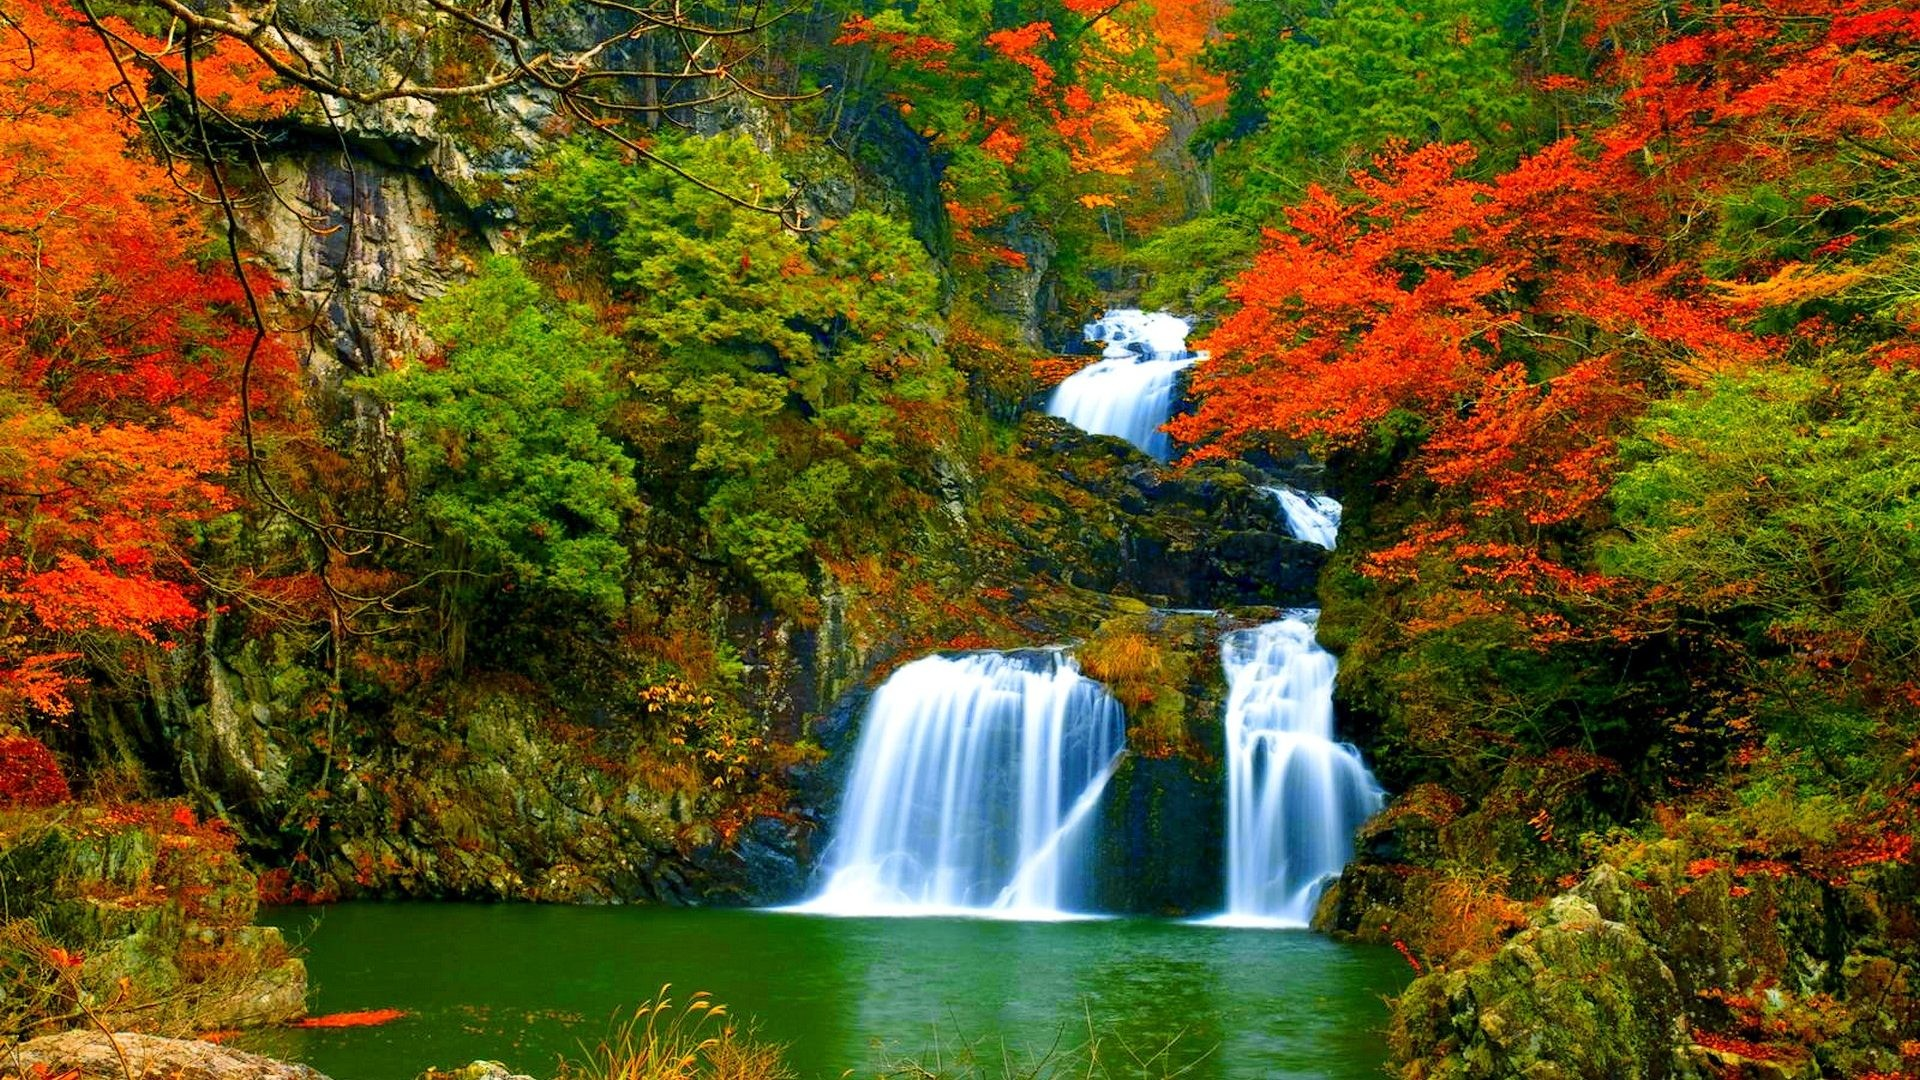 New England Fall Wallpaper Free Animated Waterfall Wallpaper With Sound 46 Images